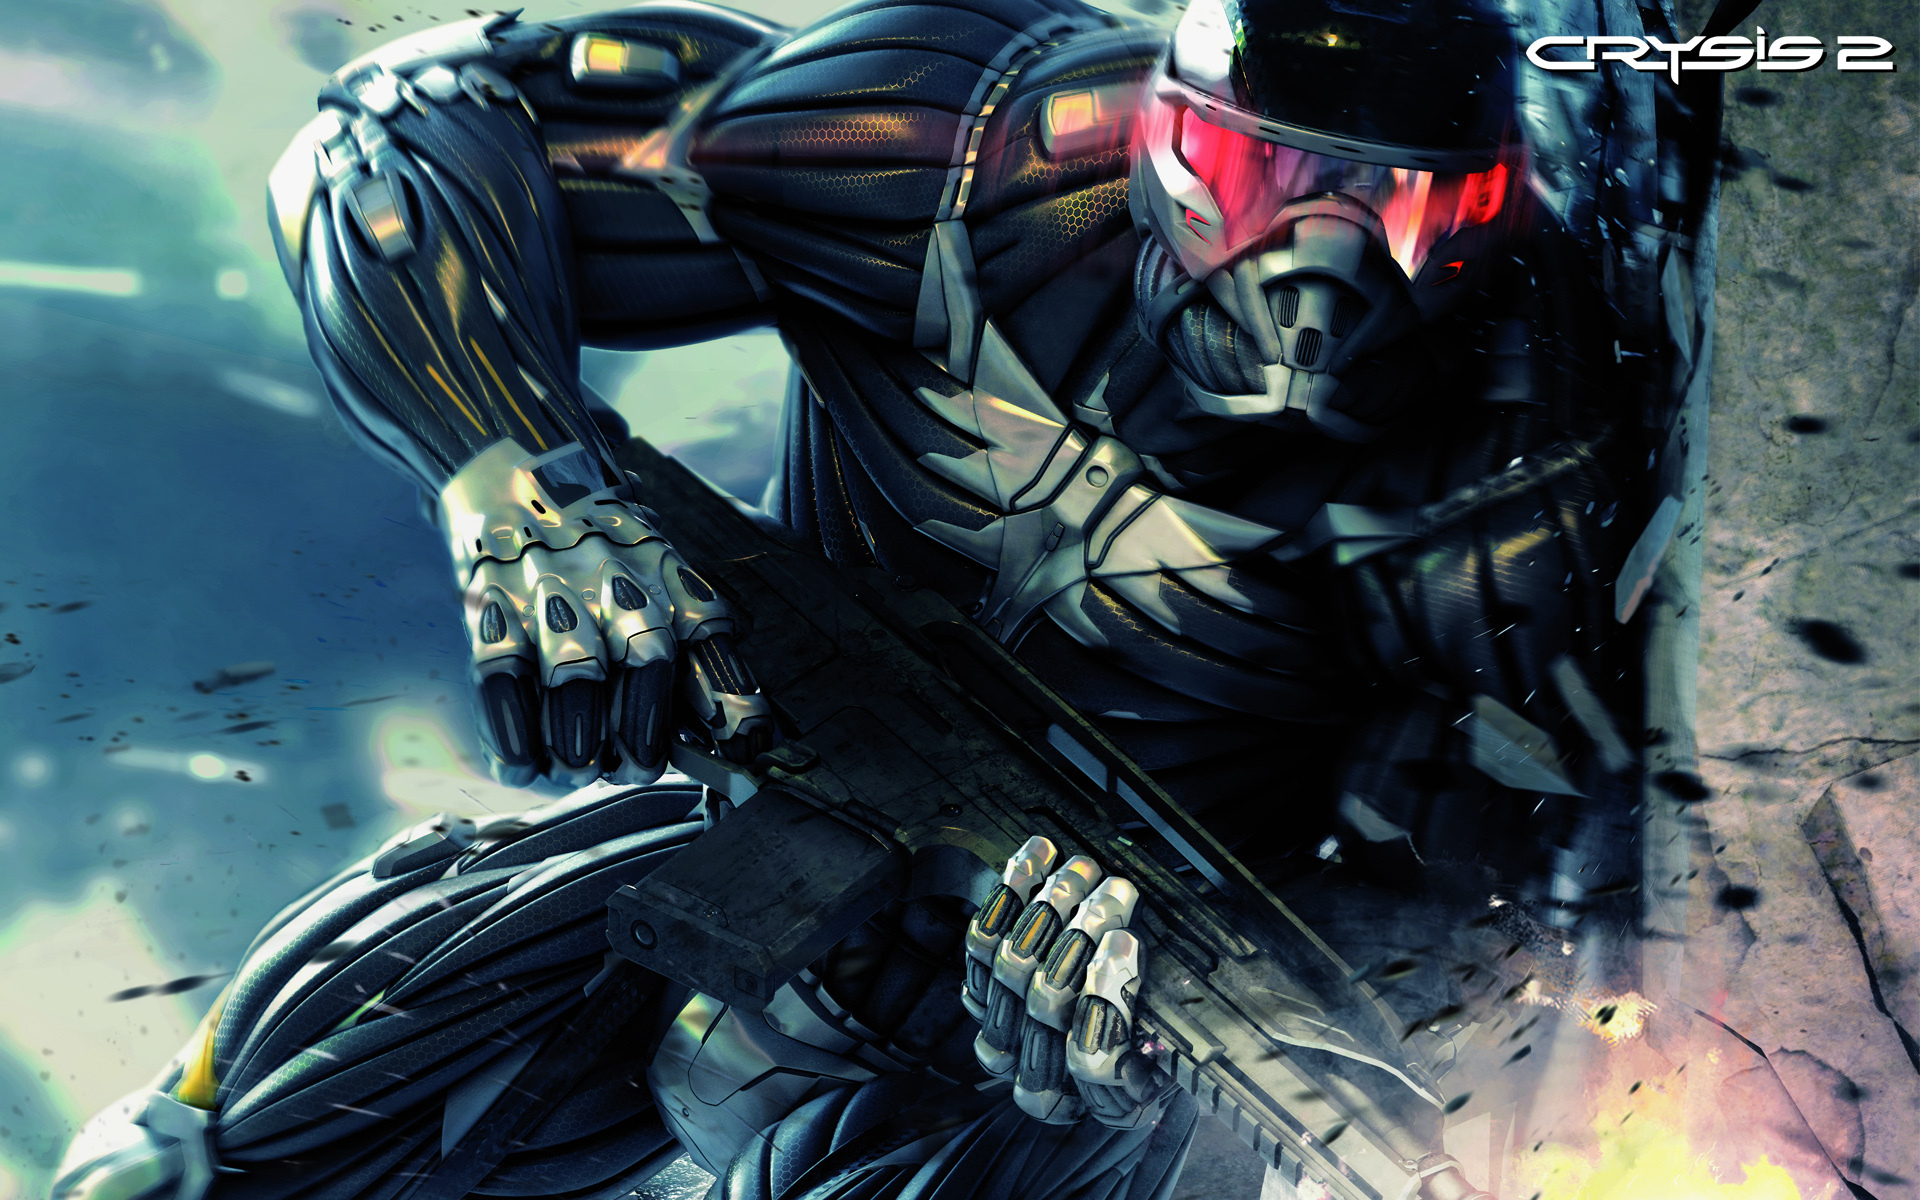 crysis 2: alcatraz (2) hd wallpaper | wallpapers.gg